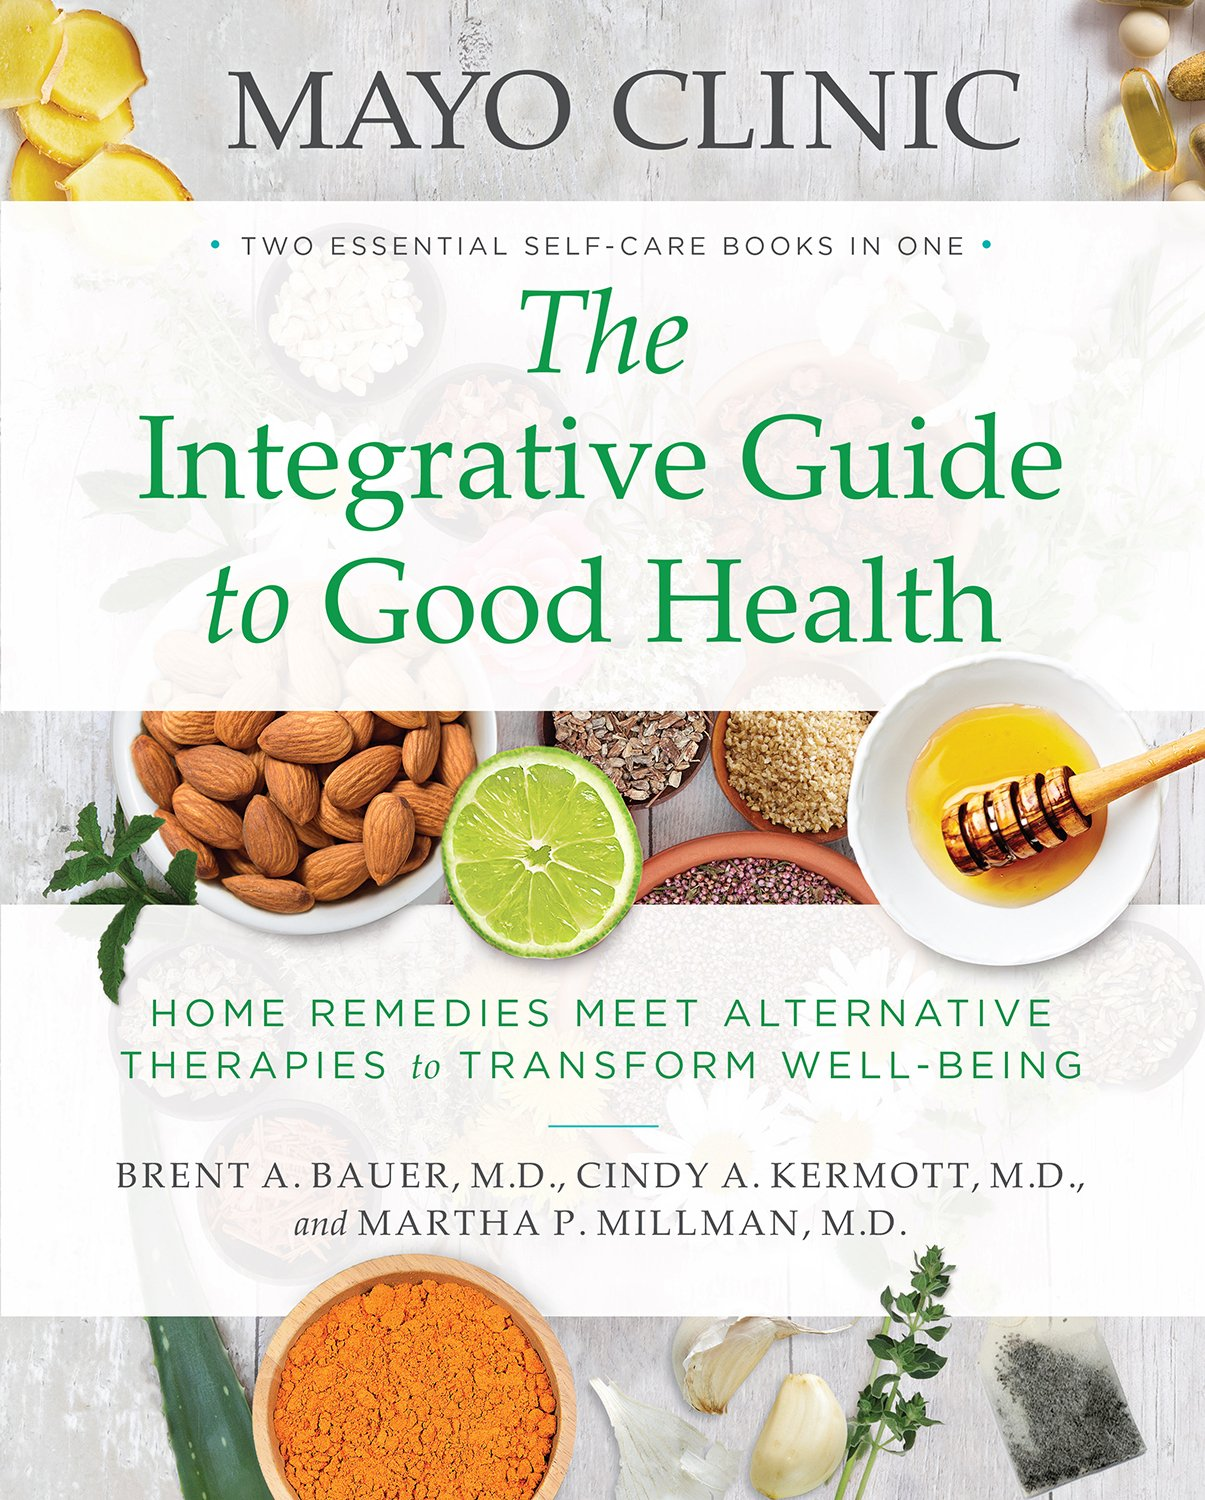 The Integrative Guide to Good Health